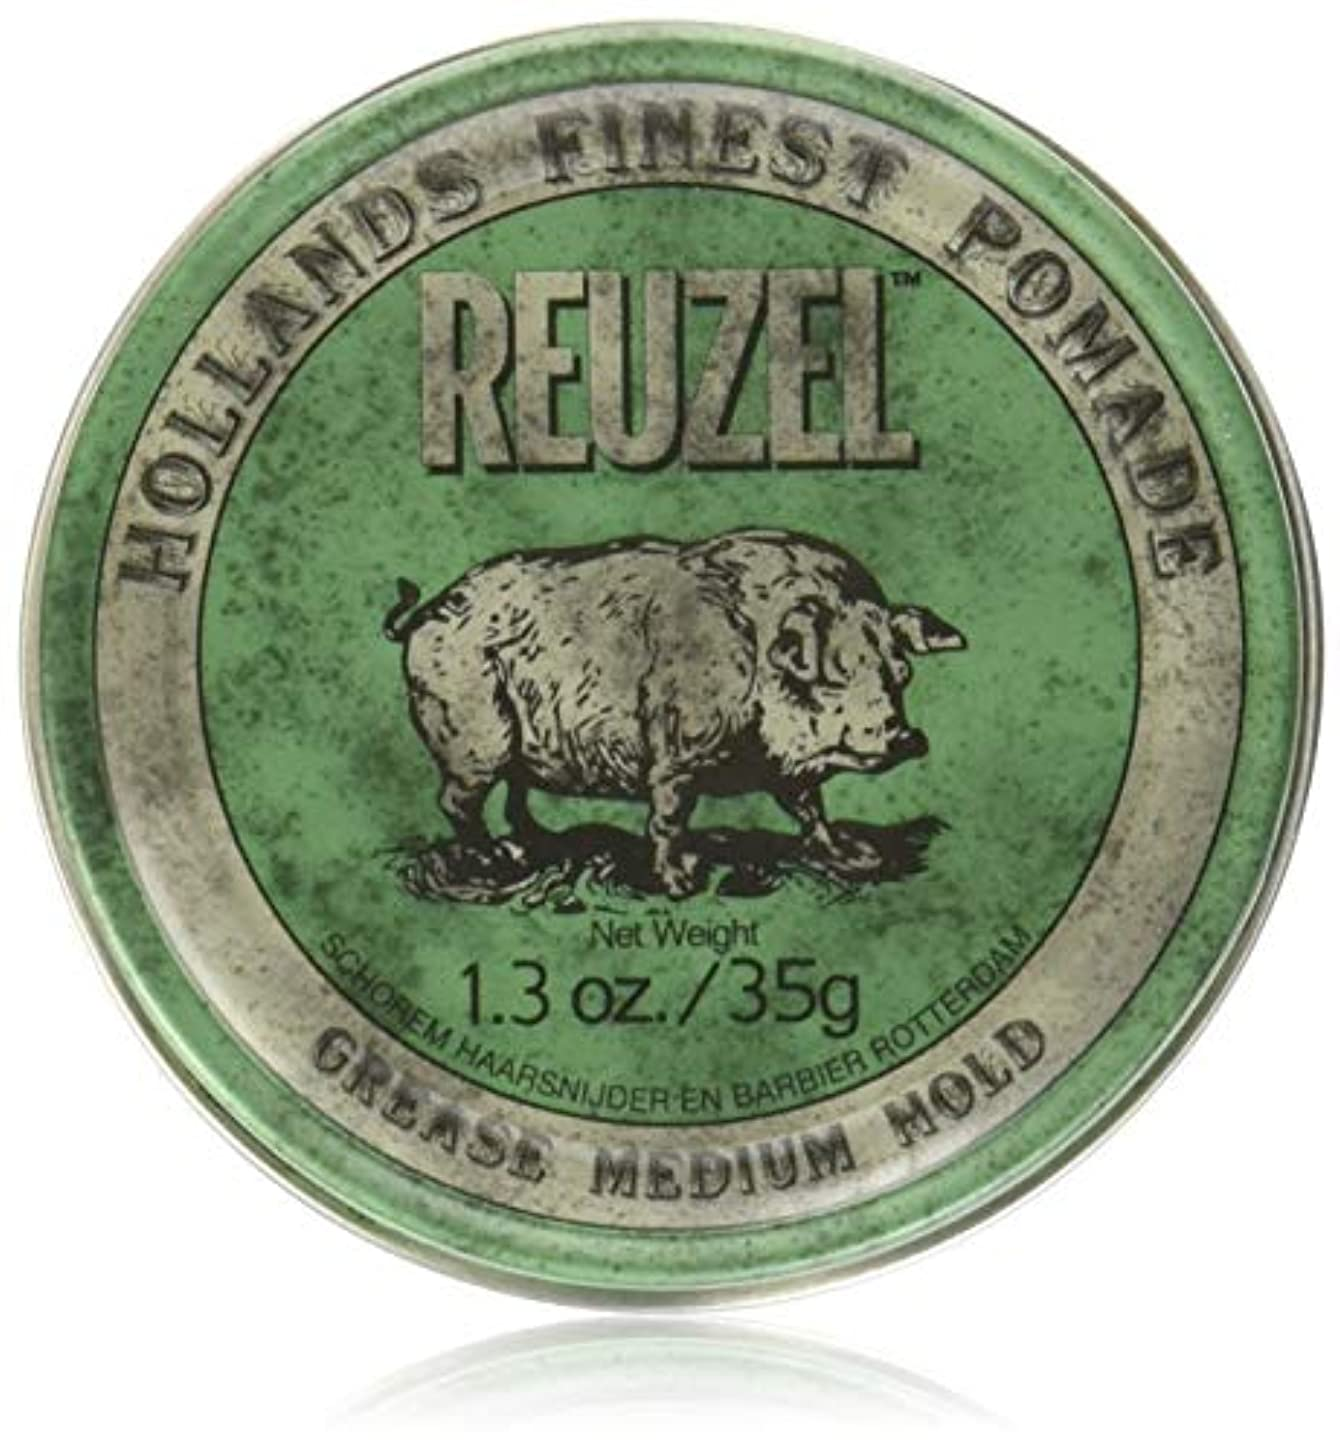 ストライプオーロックもろいREUZEL Grease Hold Hair Styling Pomade Piglet Wax/Gel, Medium, Green, 1.3 oz, 35g by REUZEL